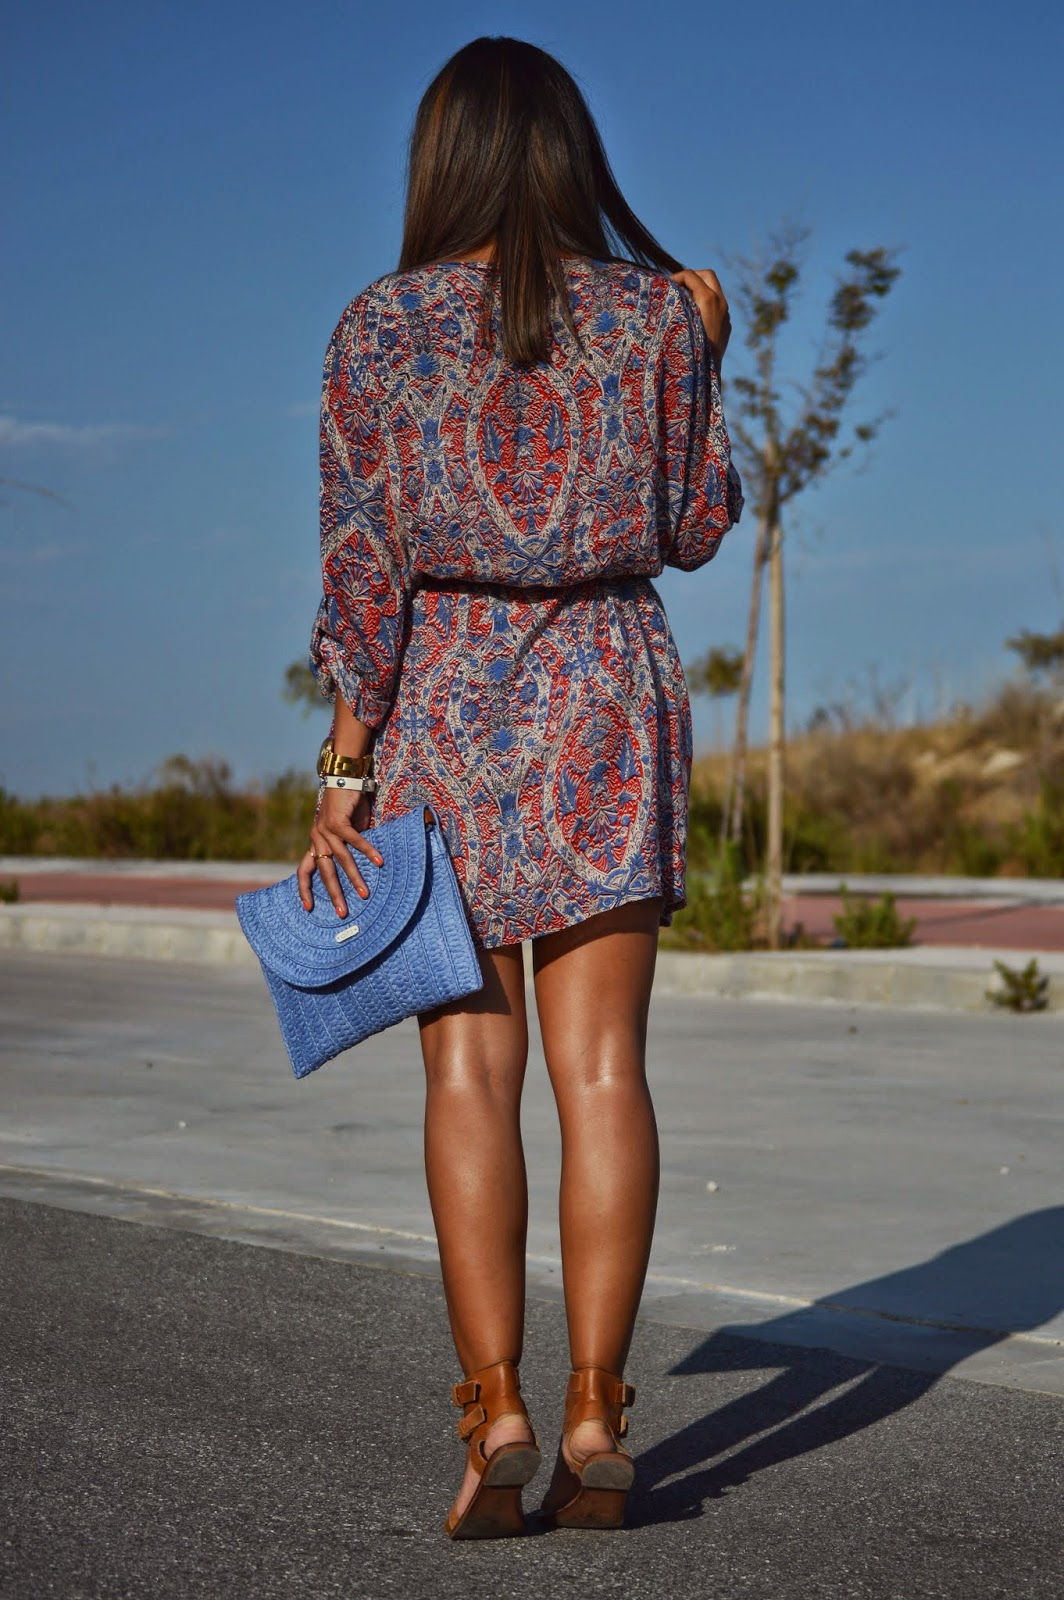 street style style fashion fashion blogger malaga malagueña outfit look ootd dress vestido summer lovely nice girl me cristina style stylish styles mango nice cute swag bag designer post blog de moda moda mood inspiration ootd wear